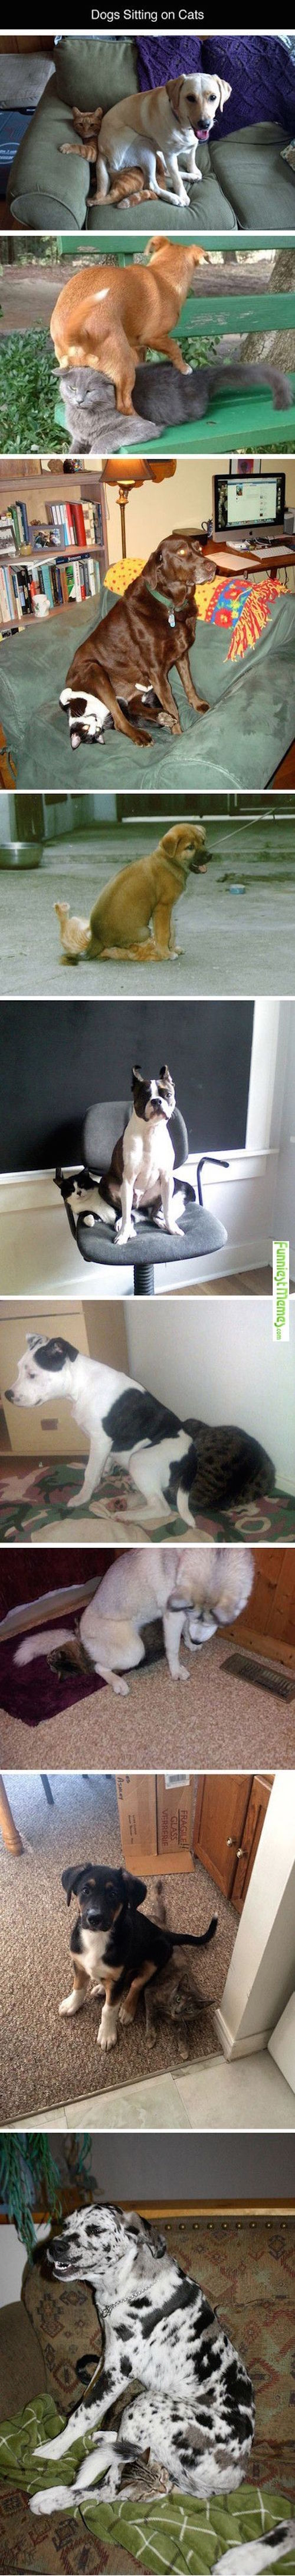 funny pictures of dogs sitting on cats